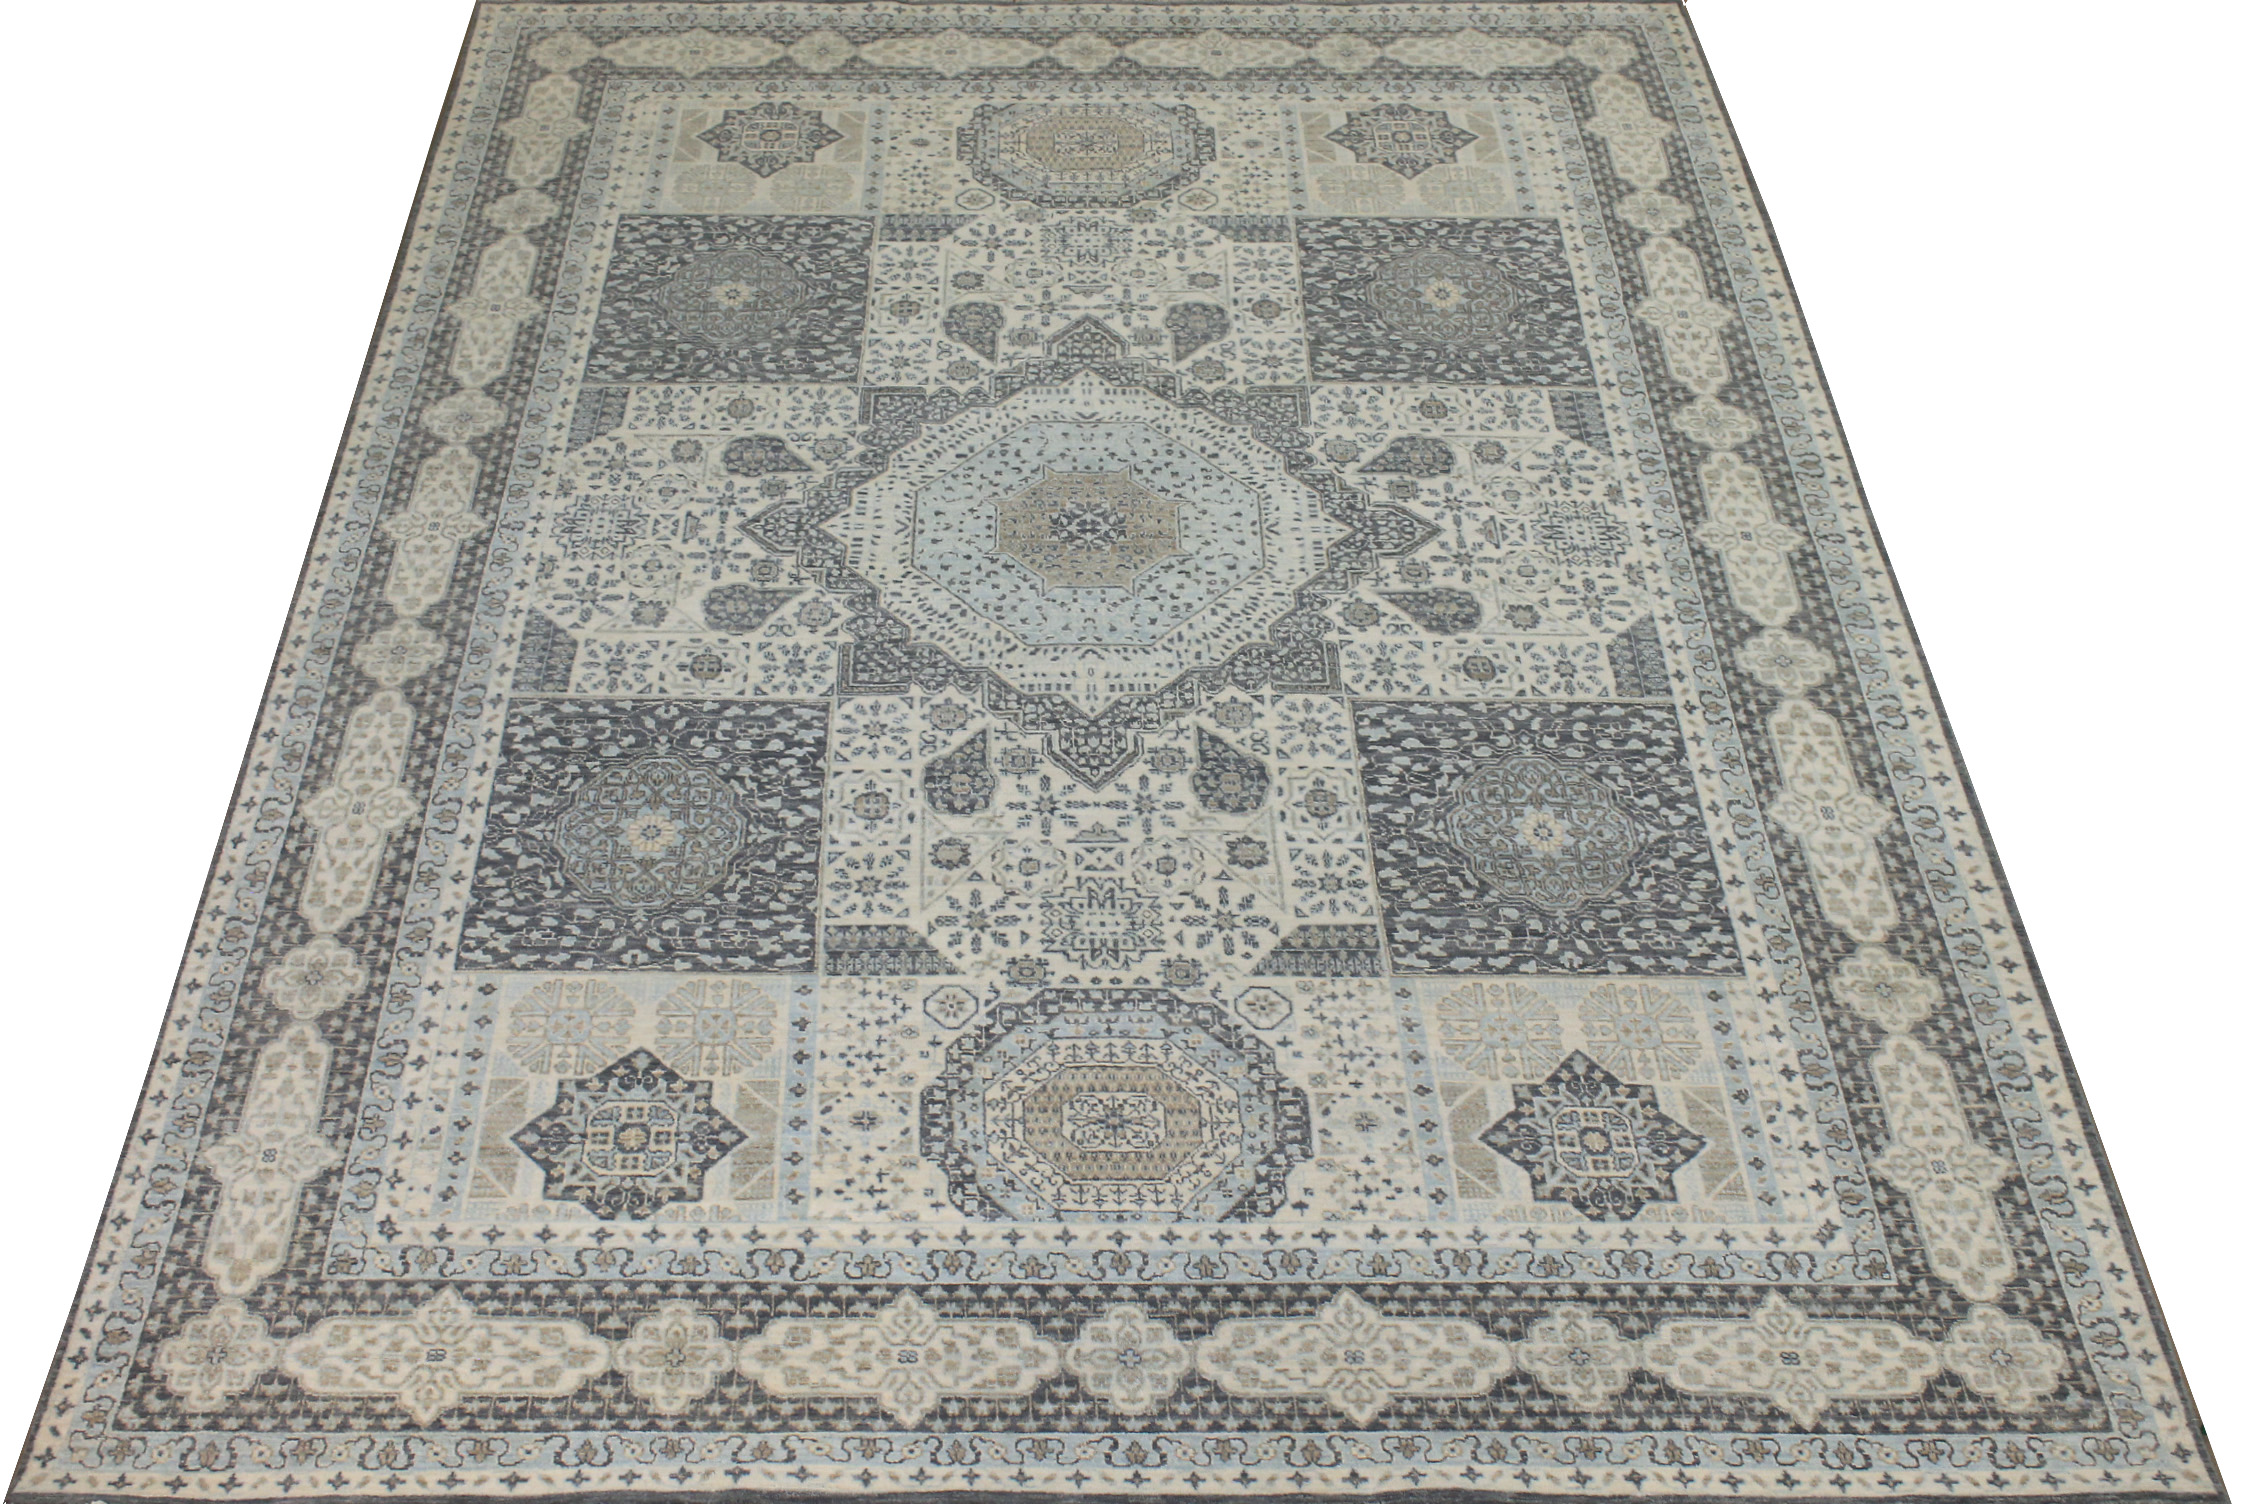 9x12 Traditional Hand Knotted Wool Area Rug - MR024609